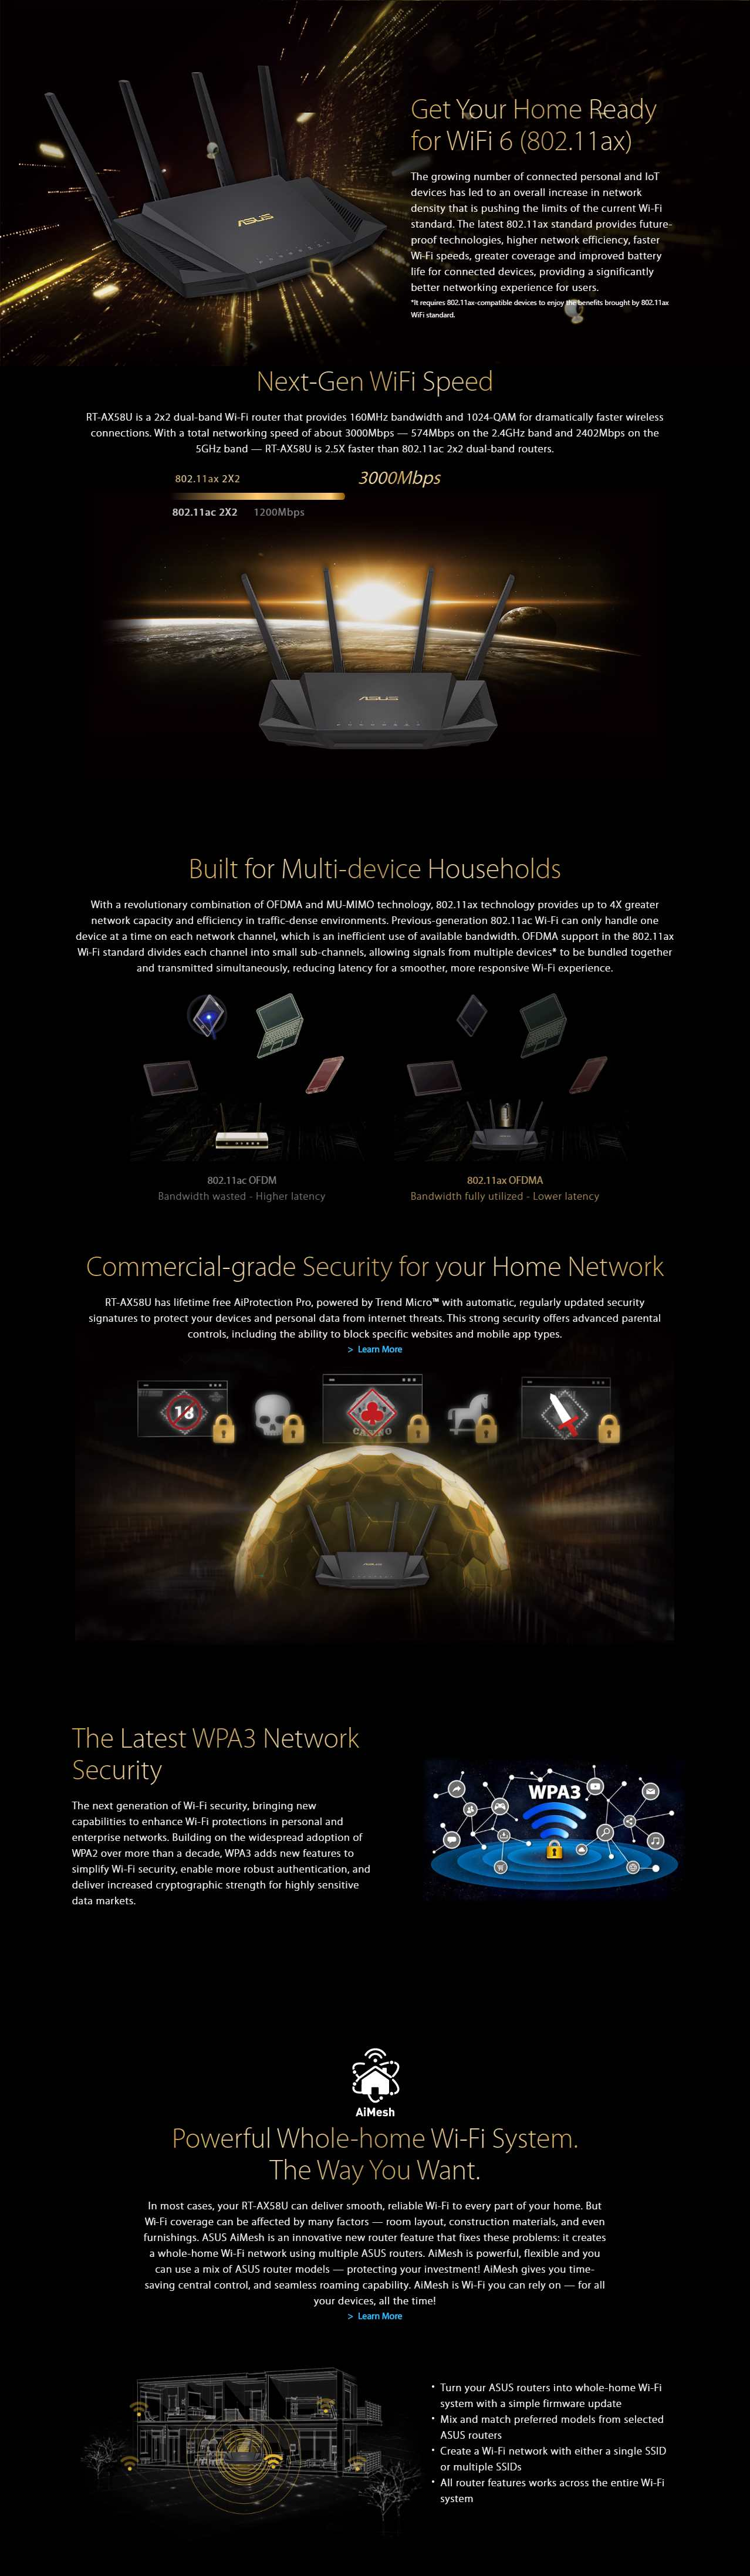 A large marketing image providing additional information about the product ASUS RT-AX3000 802.11ax Dual-Band AiMesh Gigabit Router - Additional alt info not provided